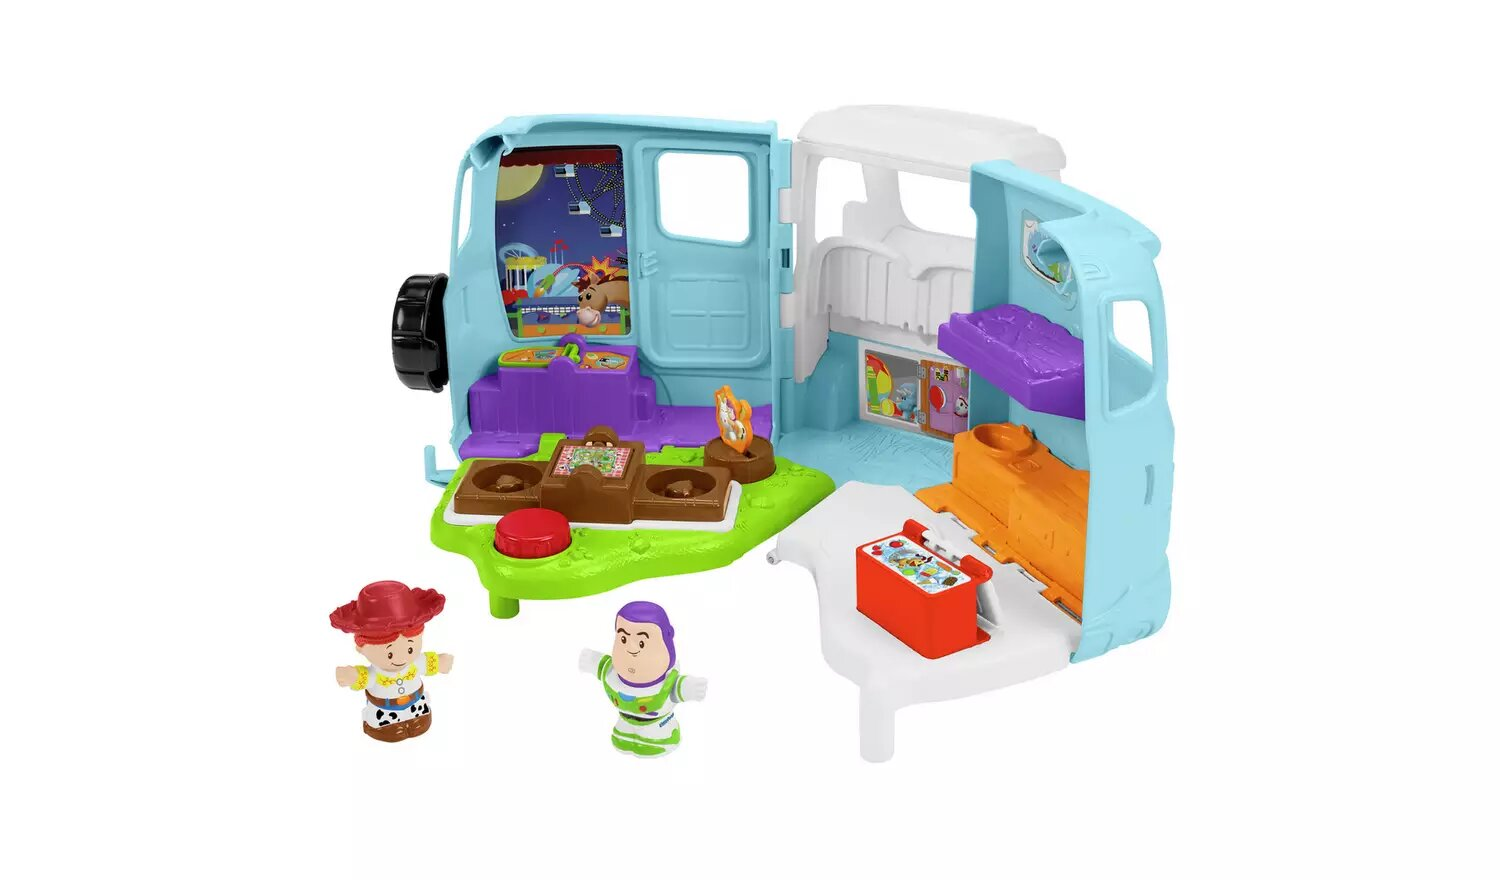 Fisher Price Little People Disney Toy Story 4 Jessie's RV.